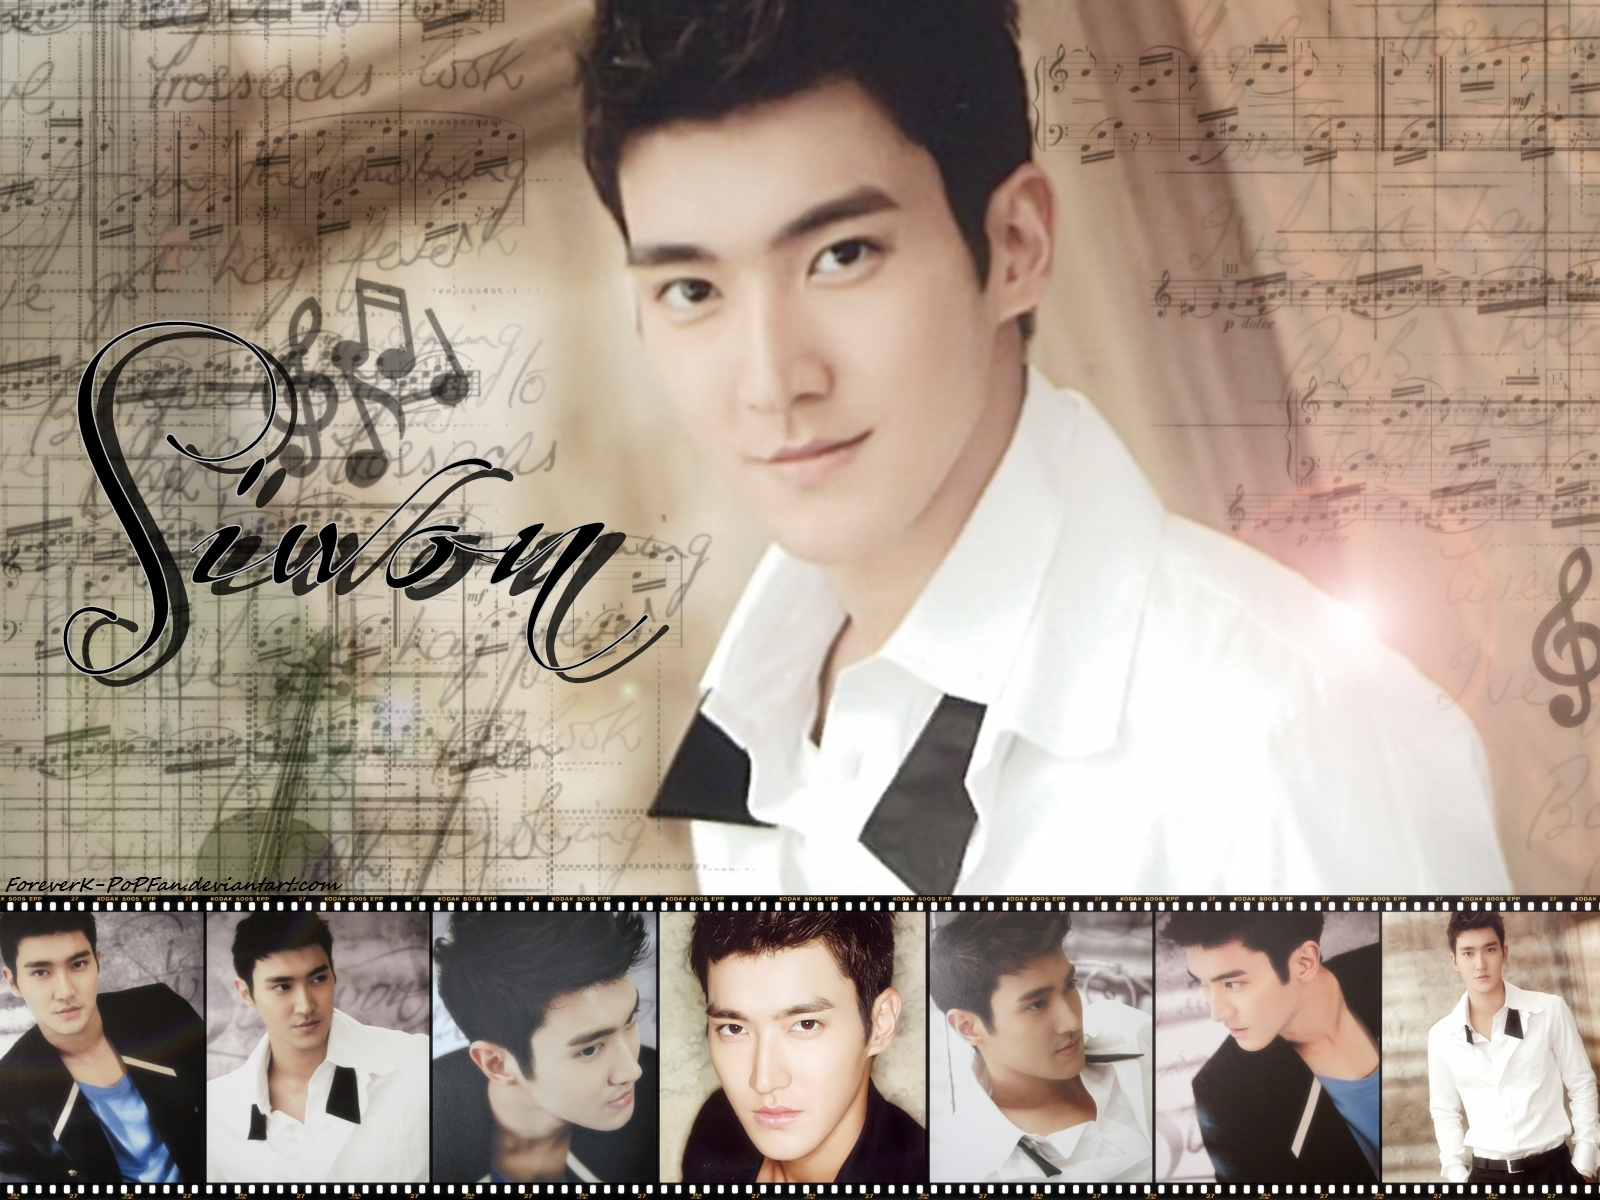 Choi Siwon Wallpaper 2012 Siwon wallpaper